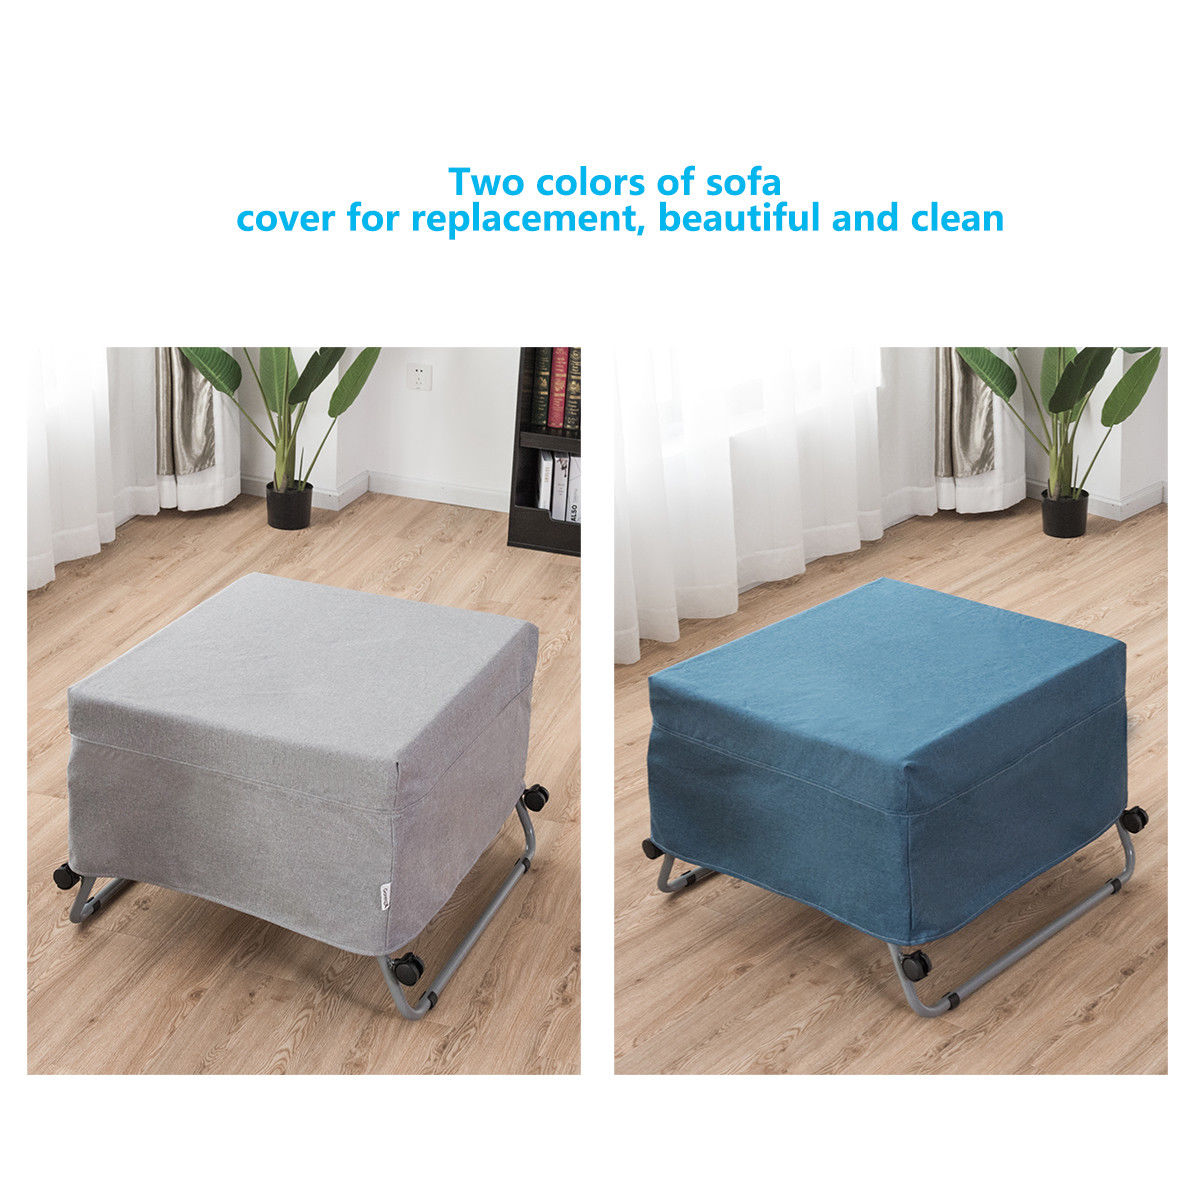 Convertible Sofa Bed Ottoman Couch Mattress Lounge Sleeper w/ Casters - image 5 de 9